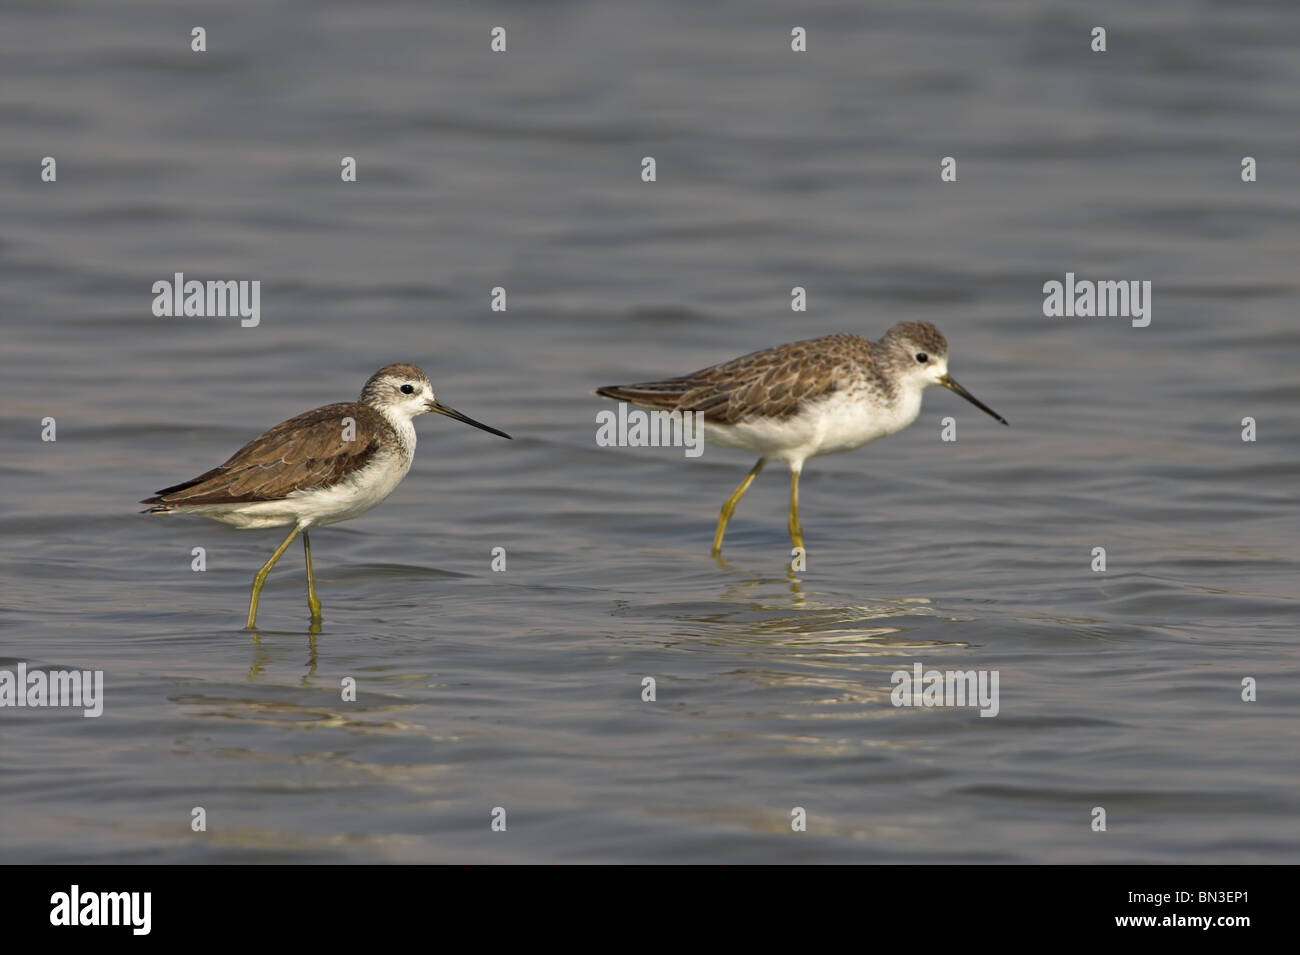 Two Marsh Sandpipers (Tringa stagnatilis) walking in the water, side view - Stock Image